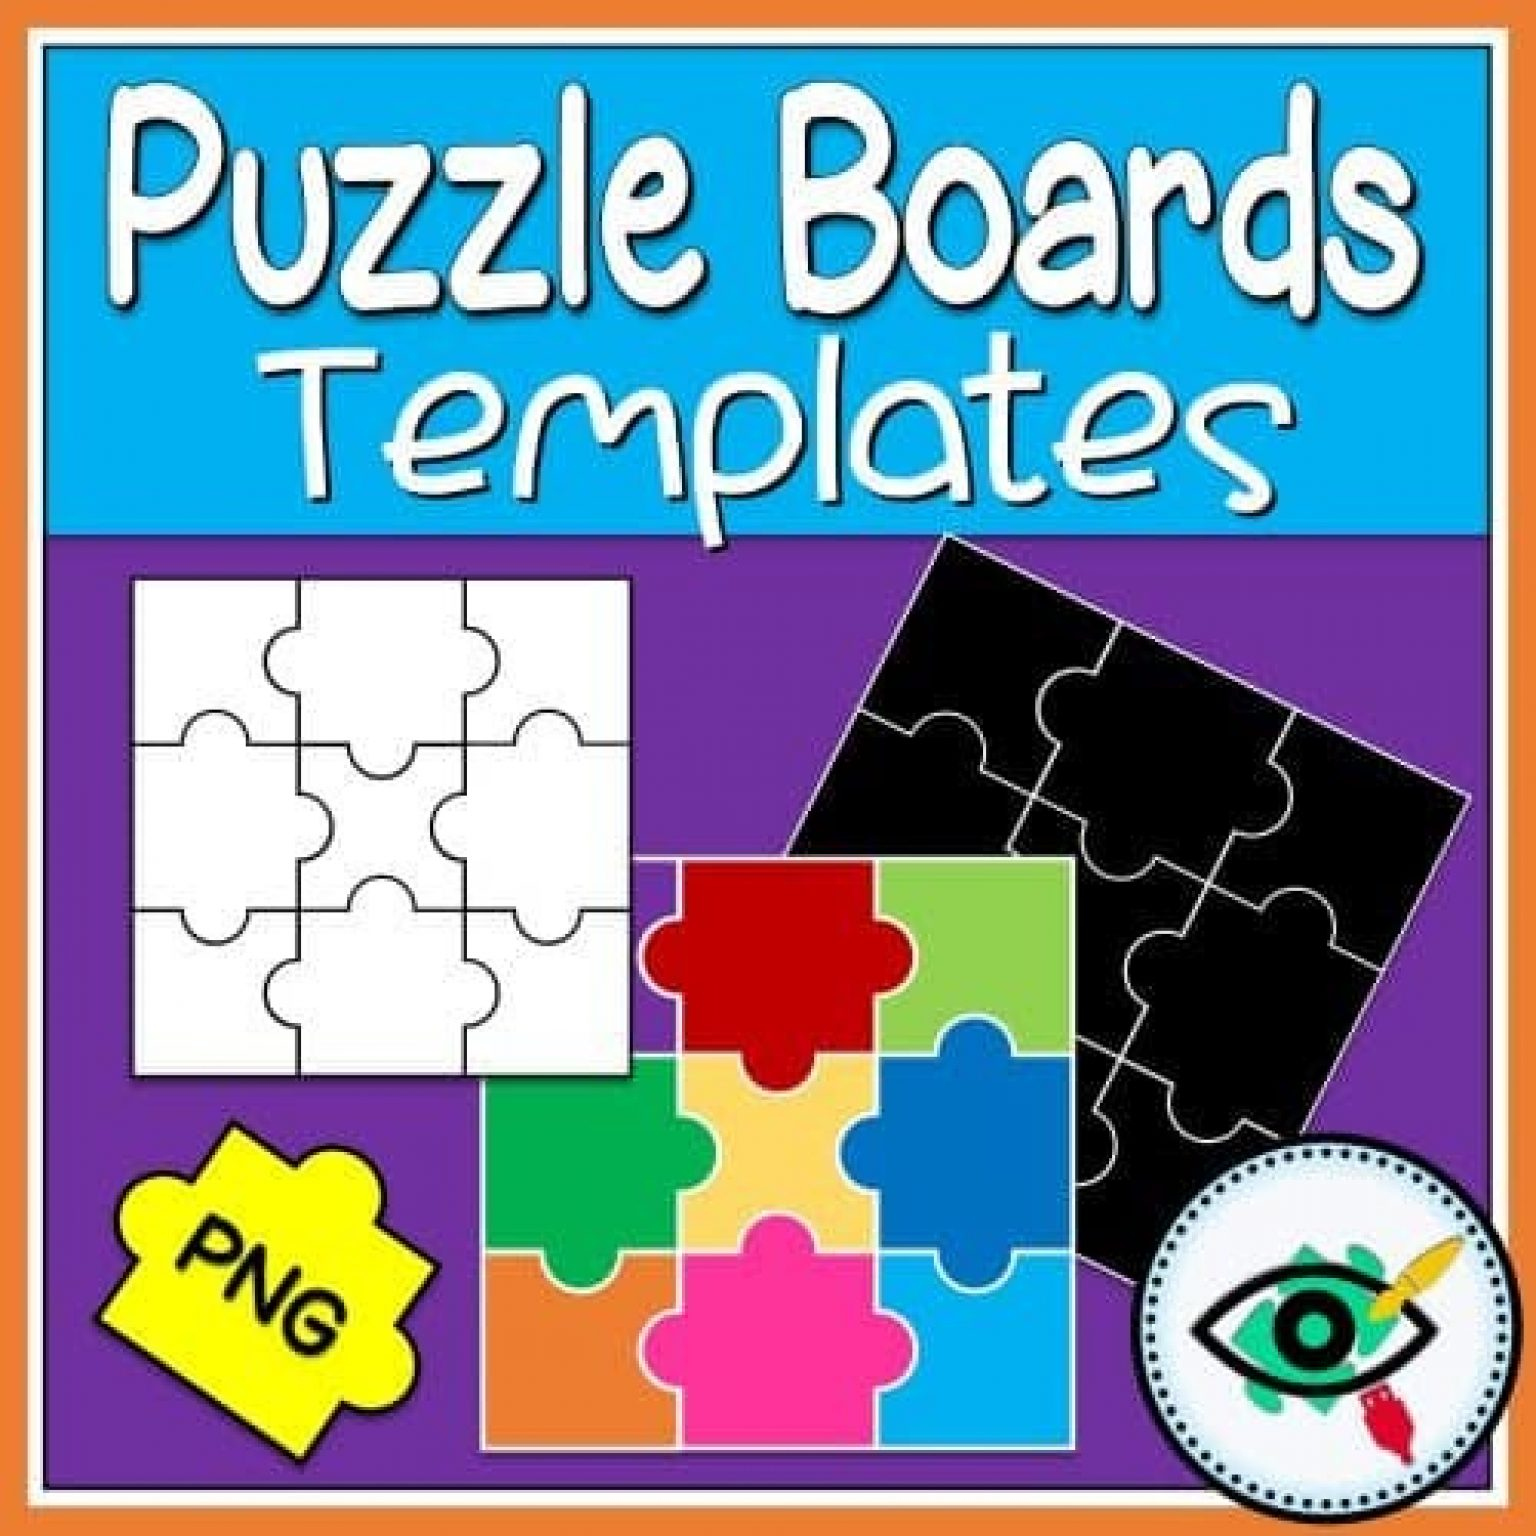 puzzle-boards-templates-title